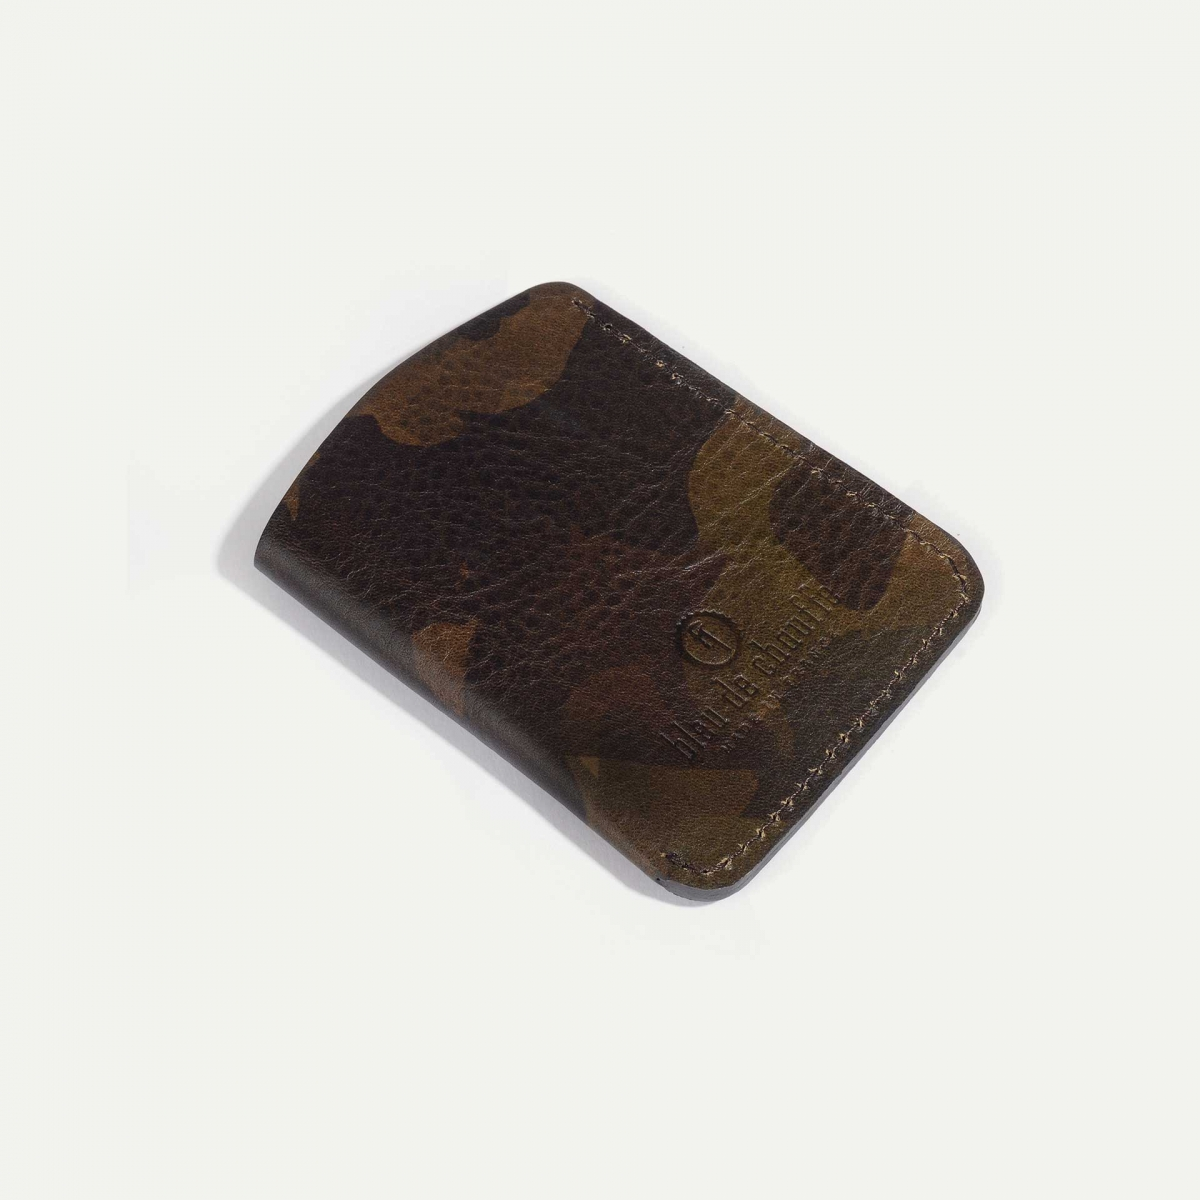 Intro business card holder - Camo (image n°3)